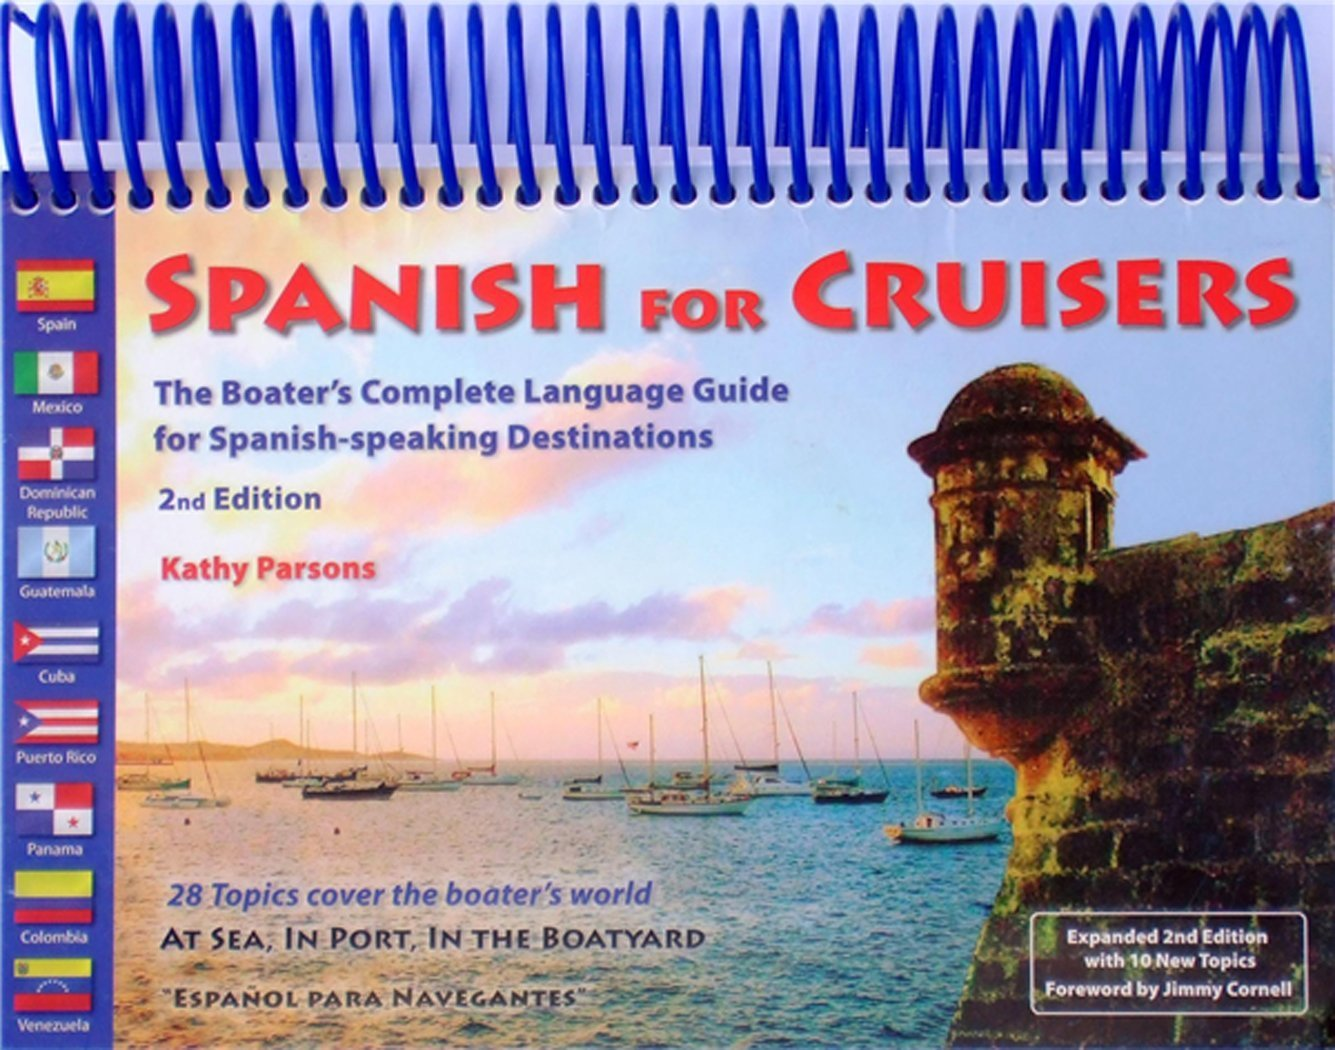 Spanish for Cruisers: The Boater's Complete Language Guide for Spanish-speaking Destinations, 2nd Edition by Paradise Cay Publications